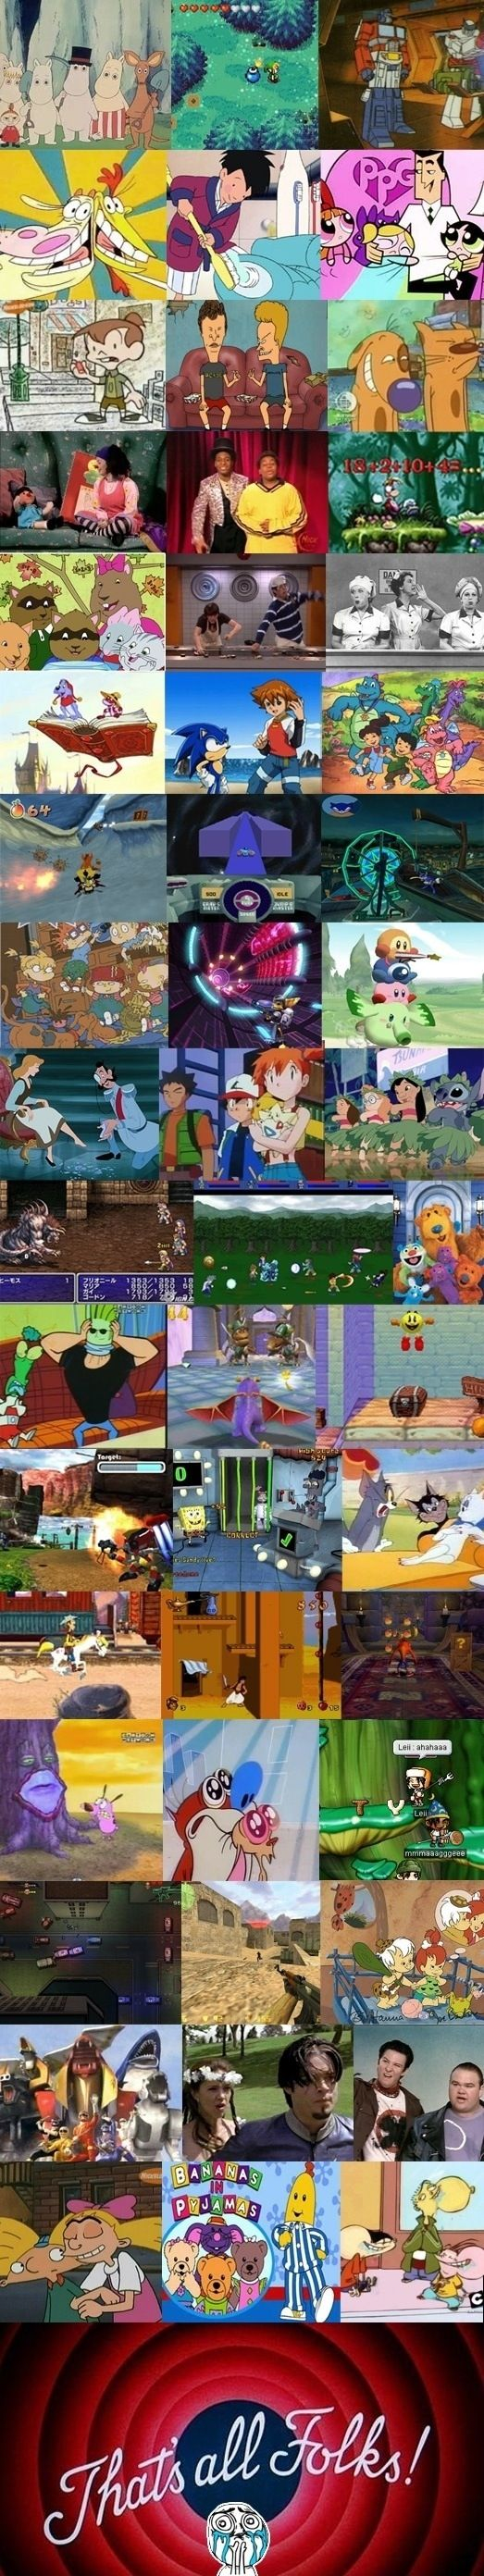 I miss the 90s...